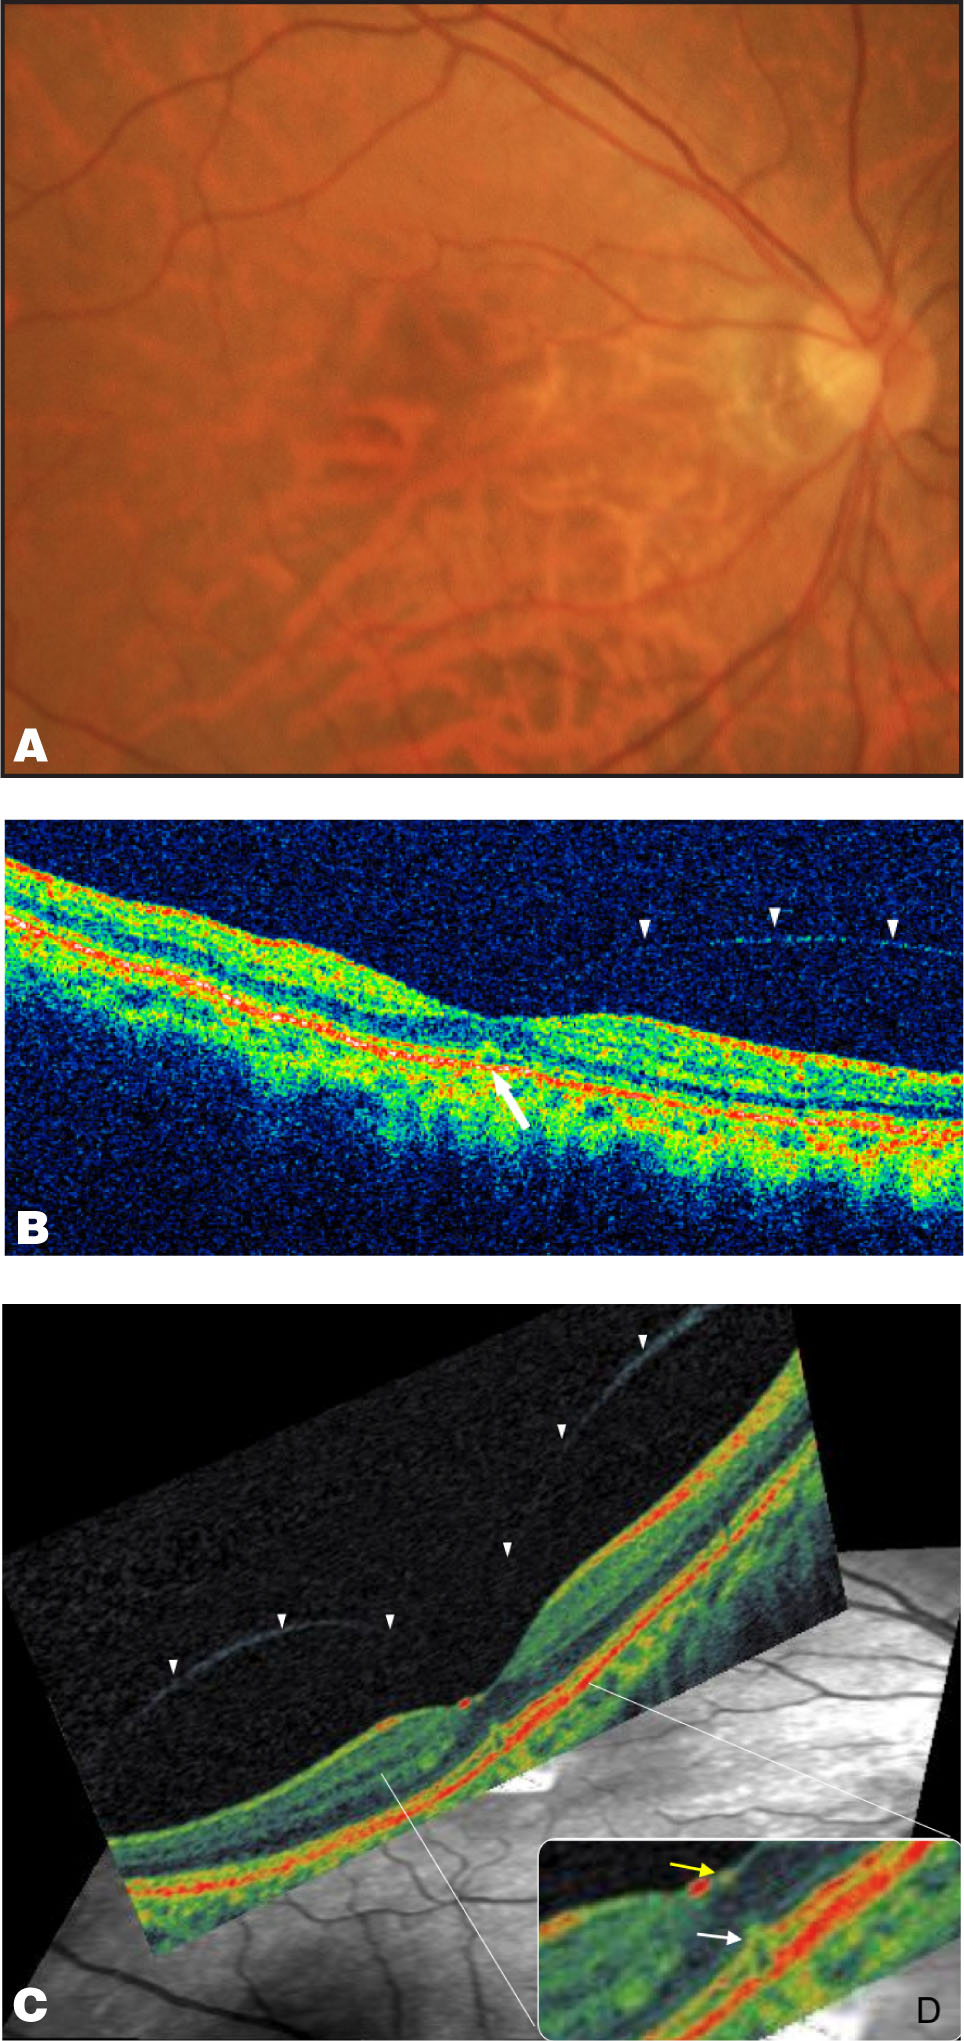 Images of the Right Eye at the First Visit. (A) A Fundus Photograph Shows a Tigroid Fundus and No Obvious Foveal Abnormalities. (B) OCT 3 Shows a Small Outer Retinal Defect (arrow) and an Intact Retinal Pigment Epithelium Layer with a Perifoveal PVD Seen as a Thin Backscattering Line (arrowheads) in a Smooth Convex Curve. (C) OCT Ophthalmoscope Shows the Reflectivity of the Perifoveal PVD, Seen as a Thin Line by the Posterior Precipitous Dip of the Posterior Hyaloid to the Fovea in a Smooth Biconvex Curve (arrowheads). (D) The Magnified Foveal Image of Figure 1C Shows that the Photoreceptor Layer Elevation (white Arrow) is Under the Hyperreflectivity of the Small Irregular Foveal Contour (yellow Arrow).